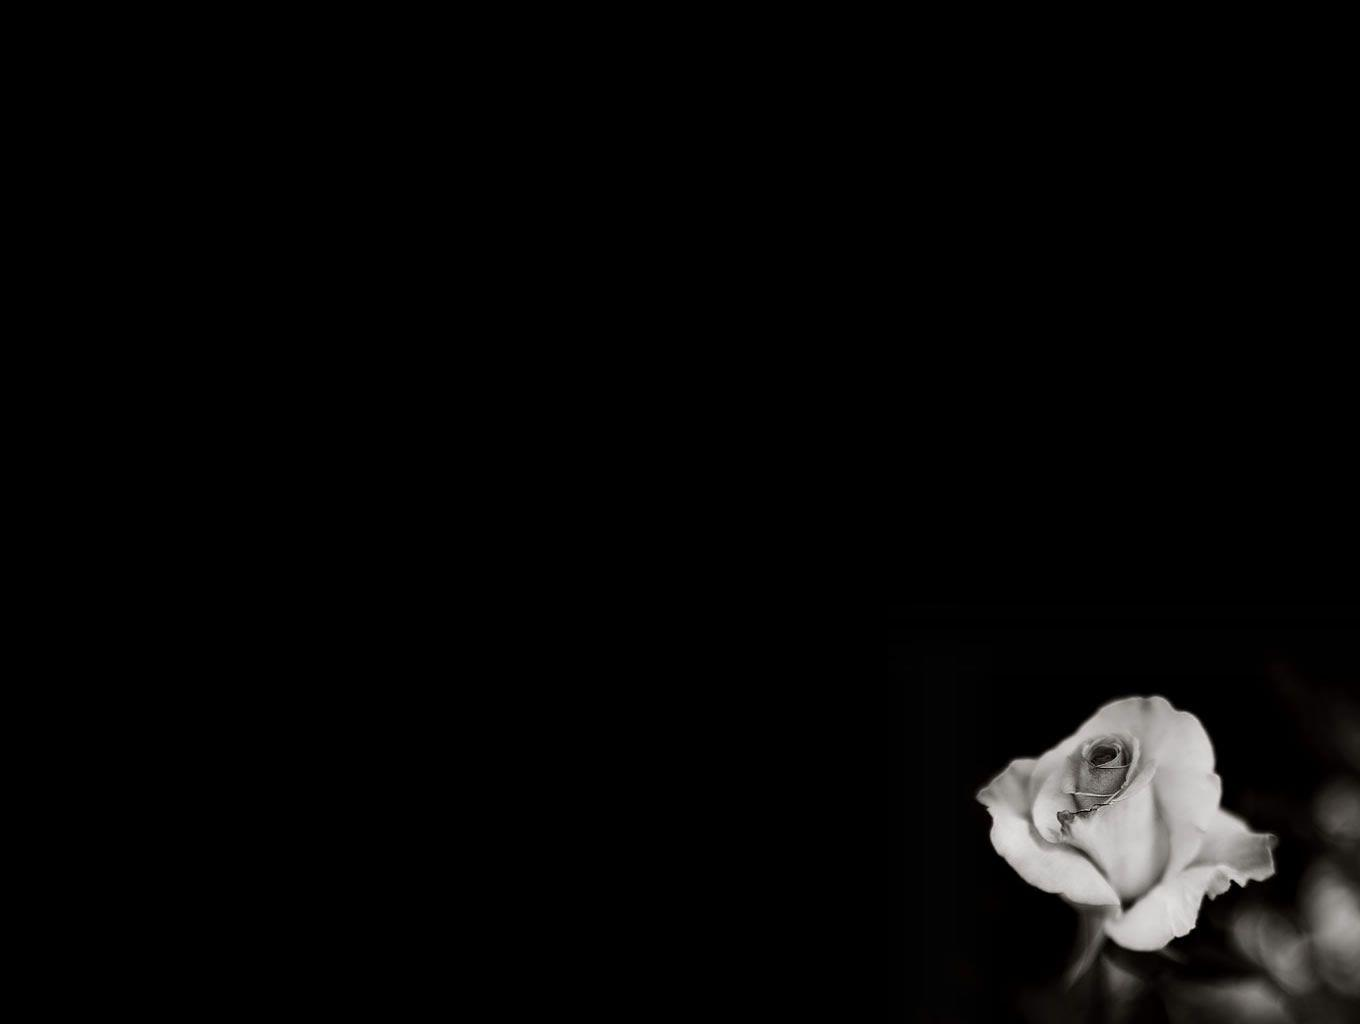 Flower Rose Black And White HD Wallpapers Flowers